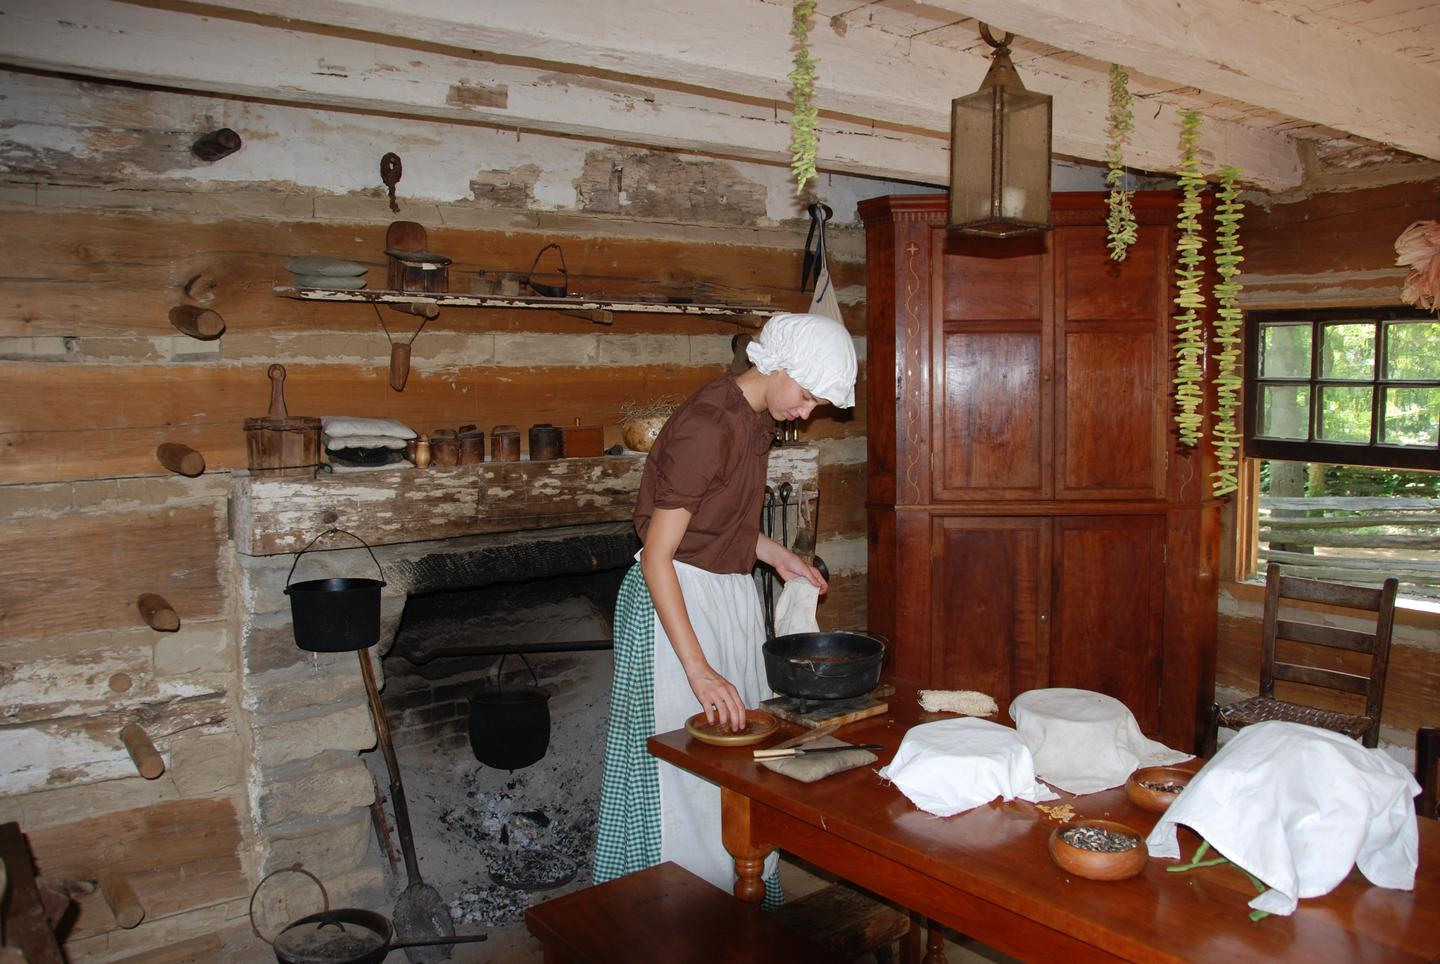 Cabin at Living Historical FarmPark rangers depict pioneer life in the 1820s.